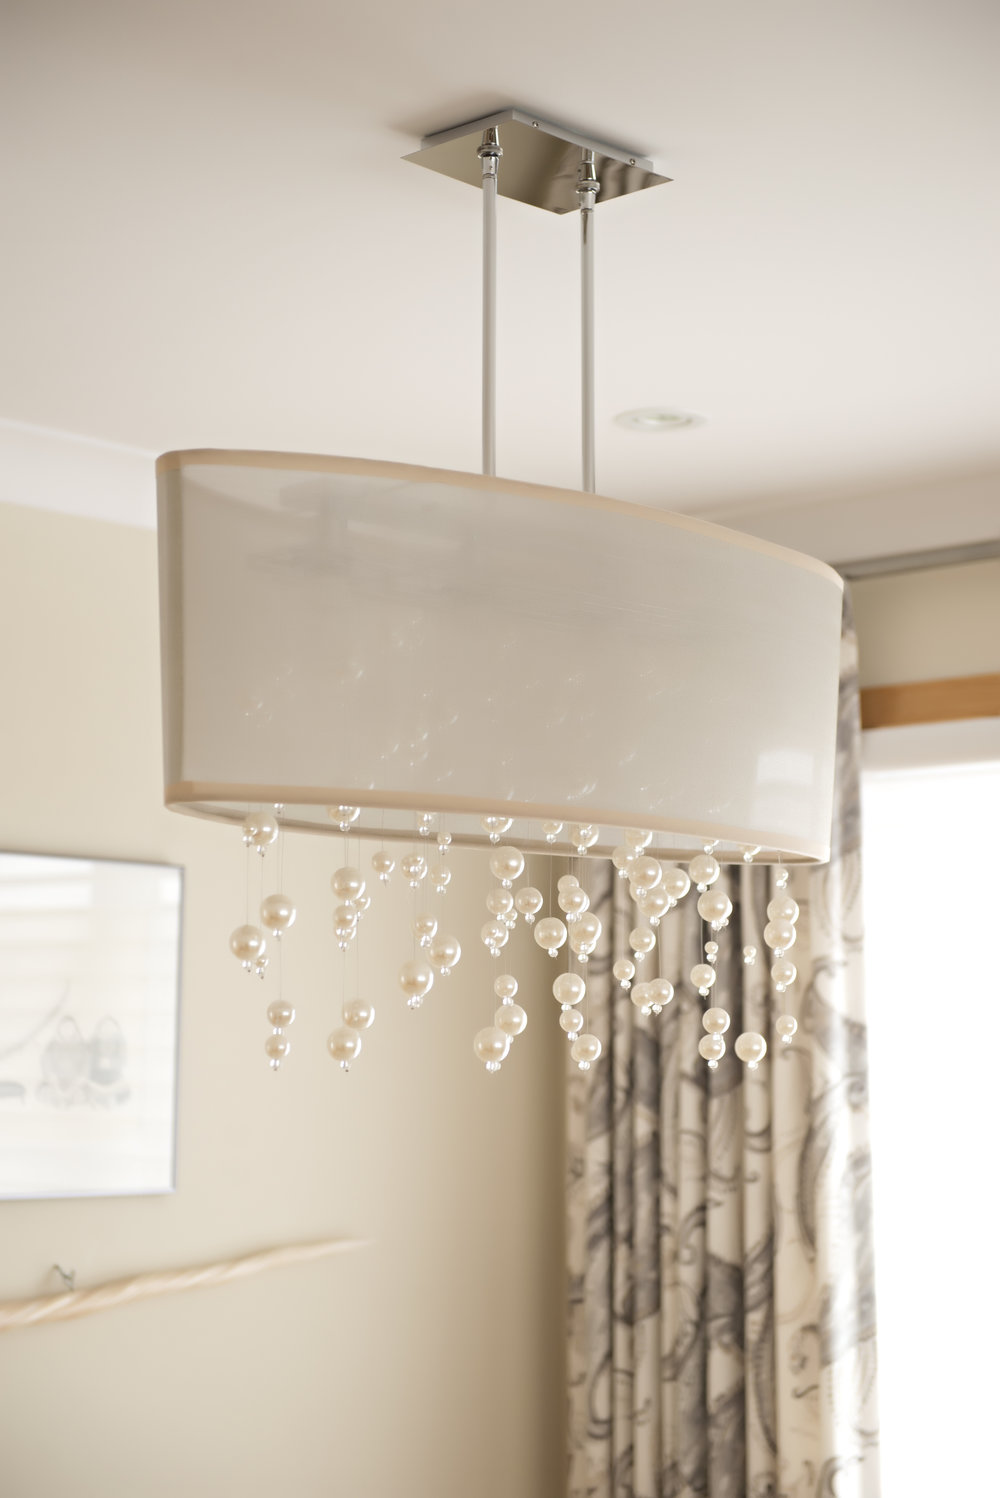 Cedar-Brae-Project-Pearl-Lighting